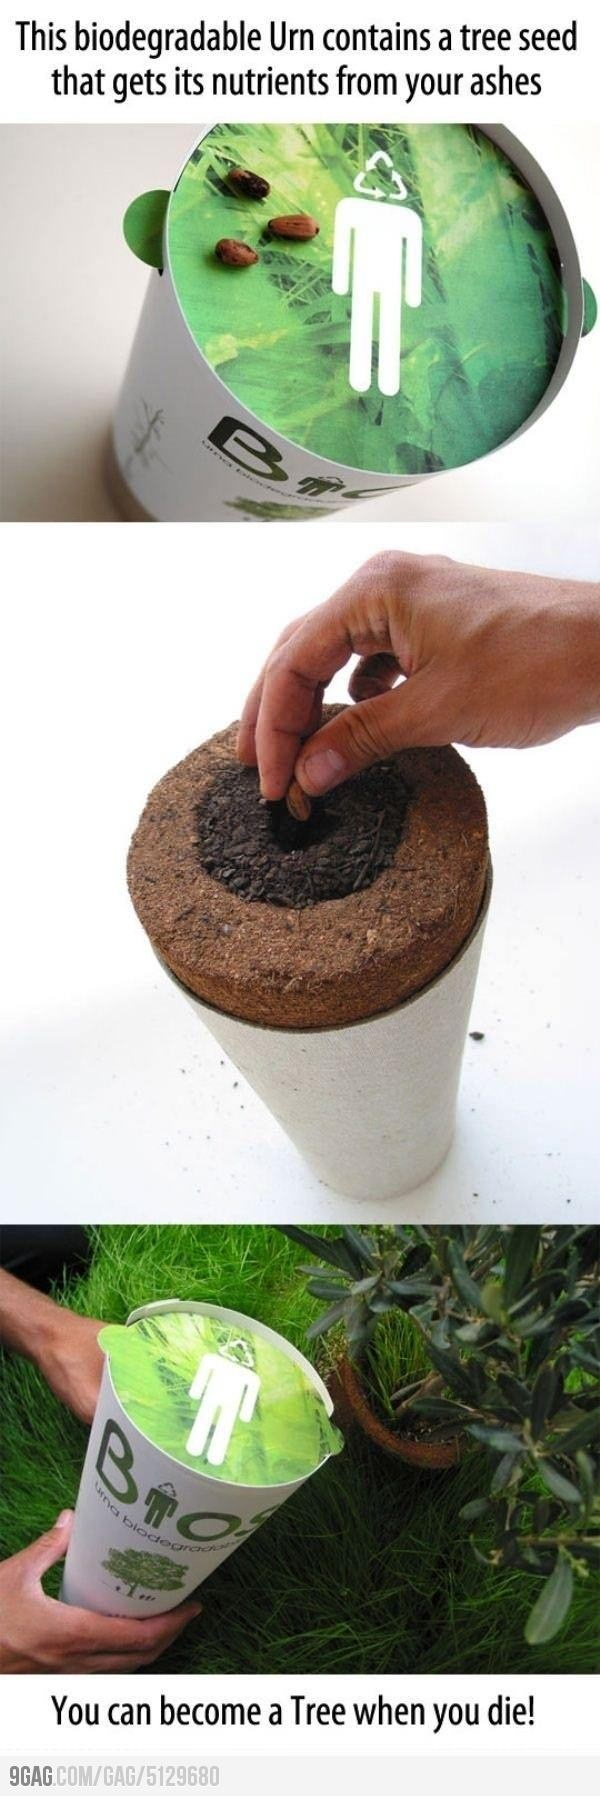 Biodegradable urnsBiodegradable Urns, Stuff, Awesome, Random, Trees, Cool Ideas, Interesting, Things, The